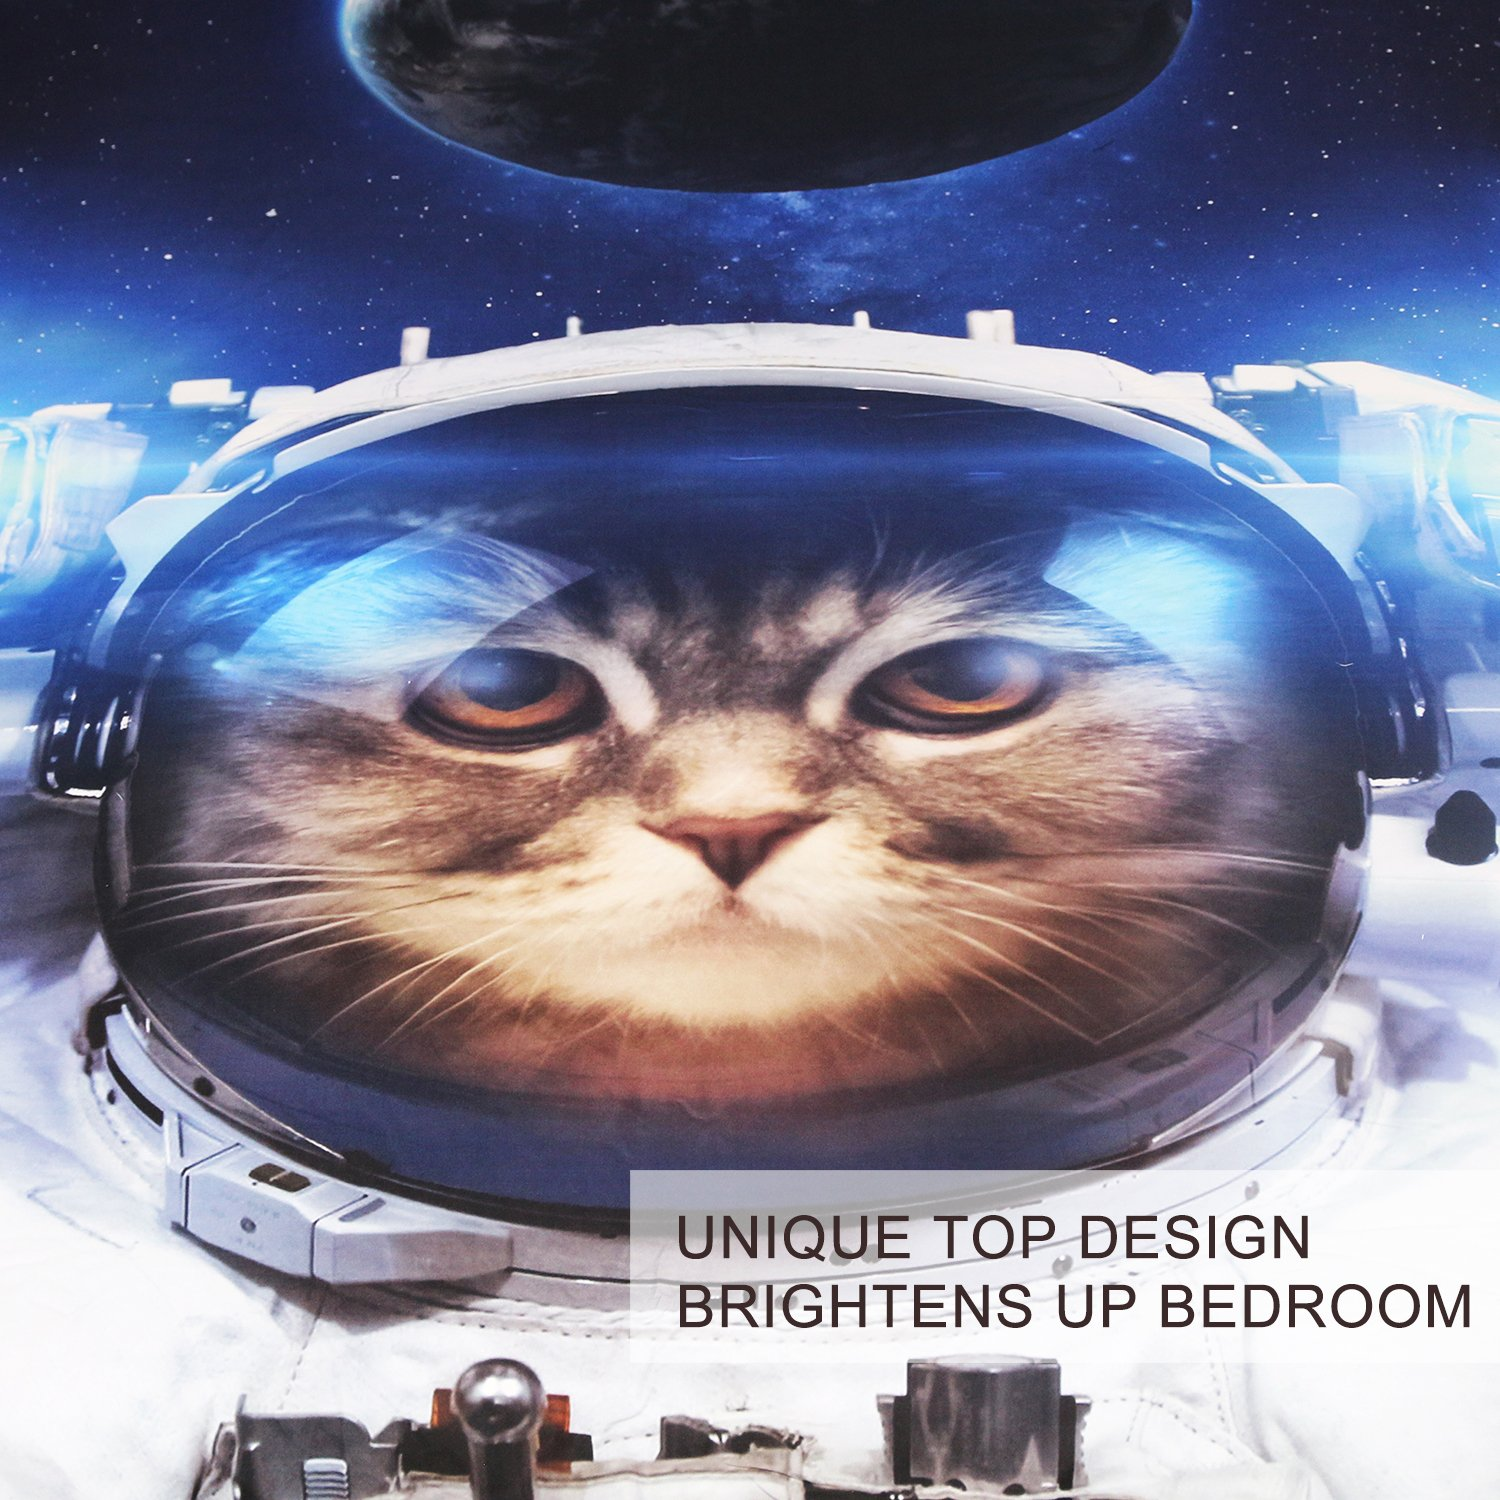 BlessLiving Funny Space Cat Bed Set 3 Piece Astronaut Pet Bedspread Teens Kids Blue Galaxy Bedding Star Universe Duvet Cover (Twin) by BlessLiving (Image #2)